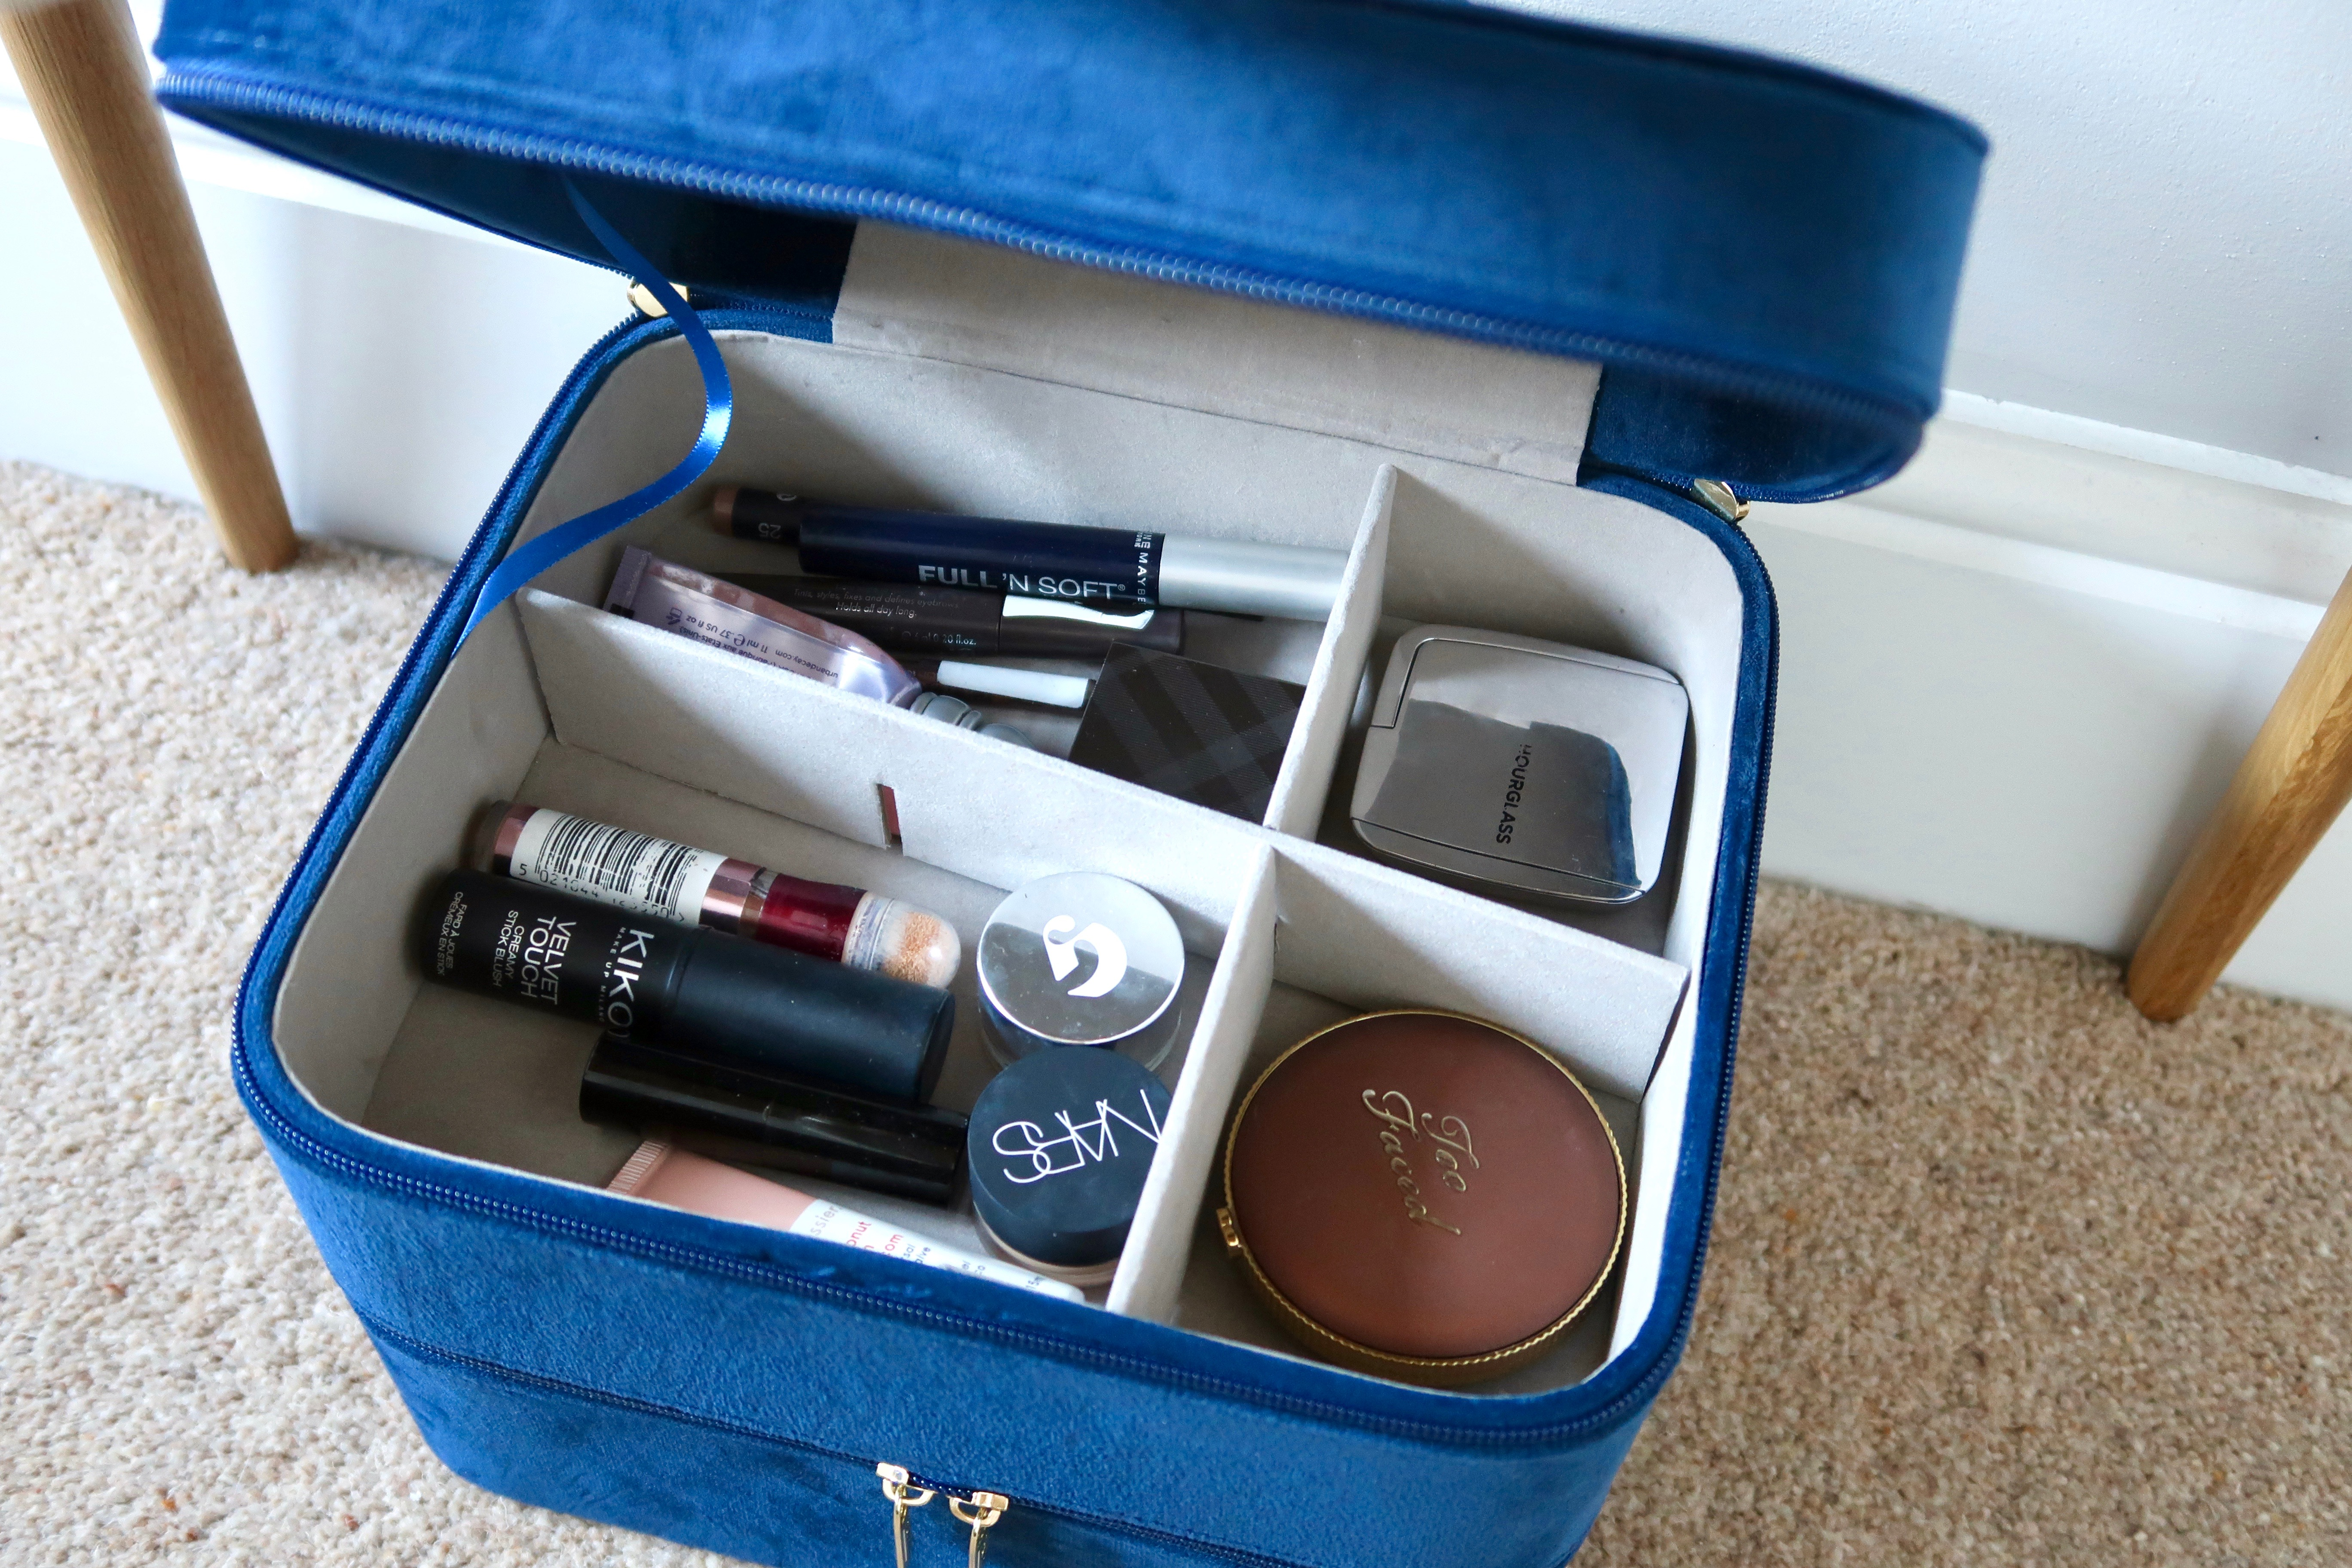 Beautify Navy Velvet makeup case